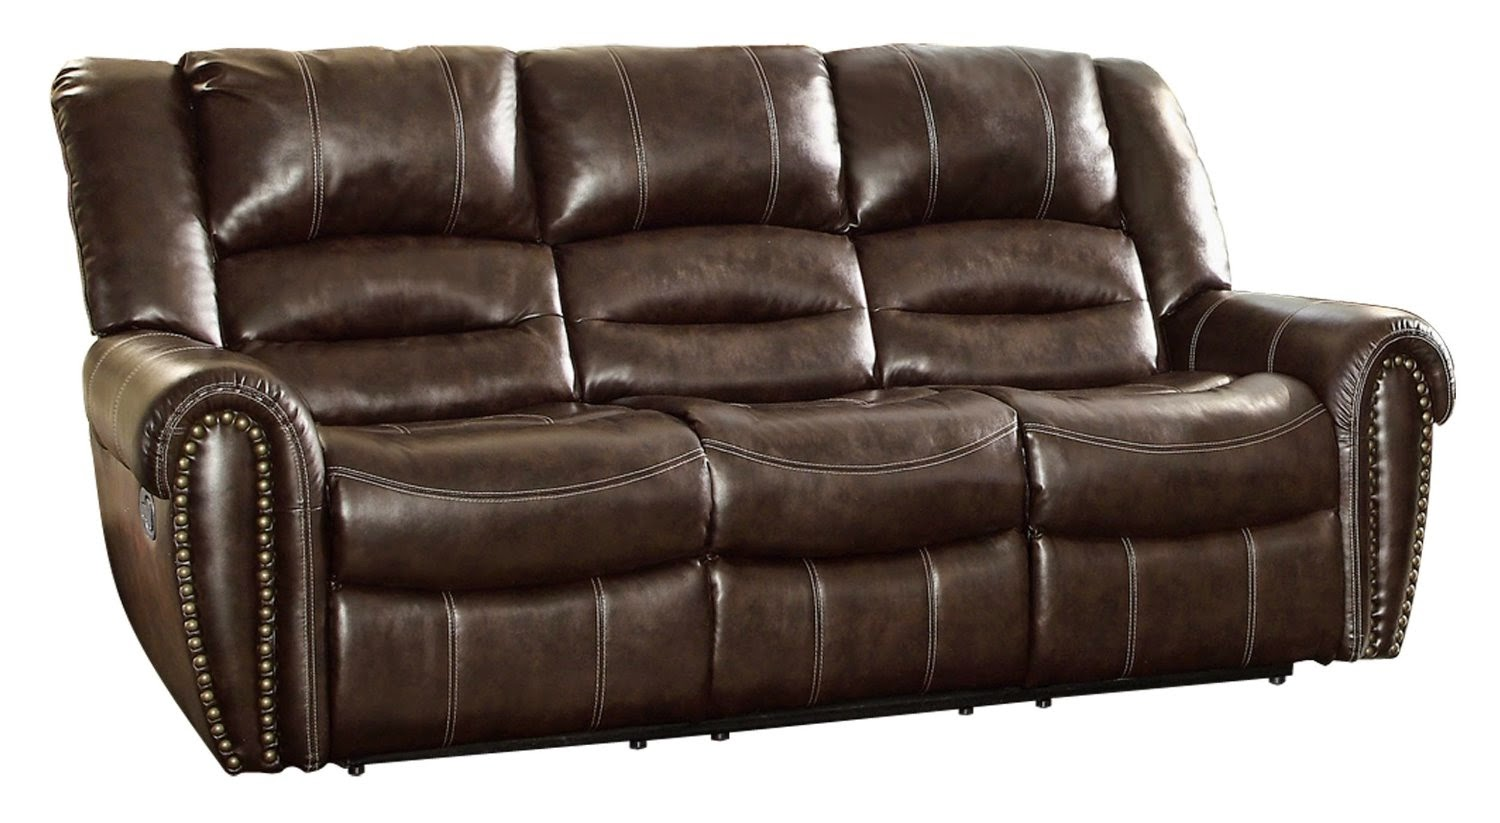 Reclining Sofa Leather Maroon Set The Best Sofas Ratings Reviews Bernhardt Weston